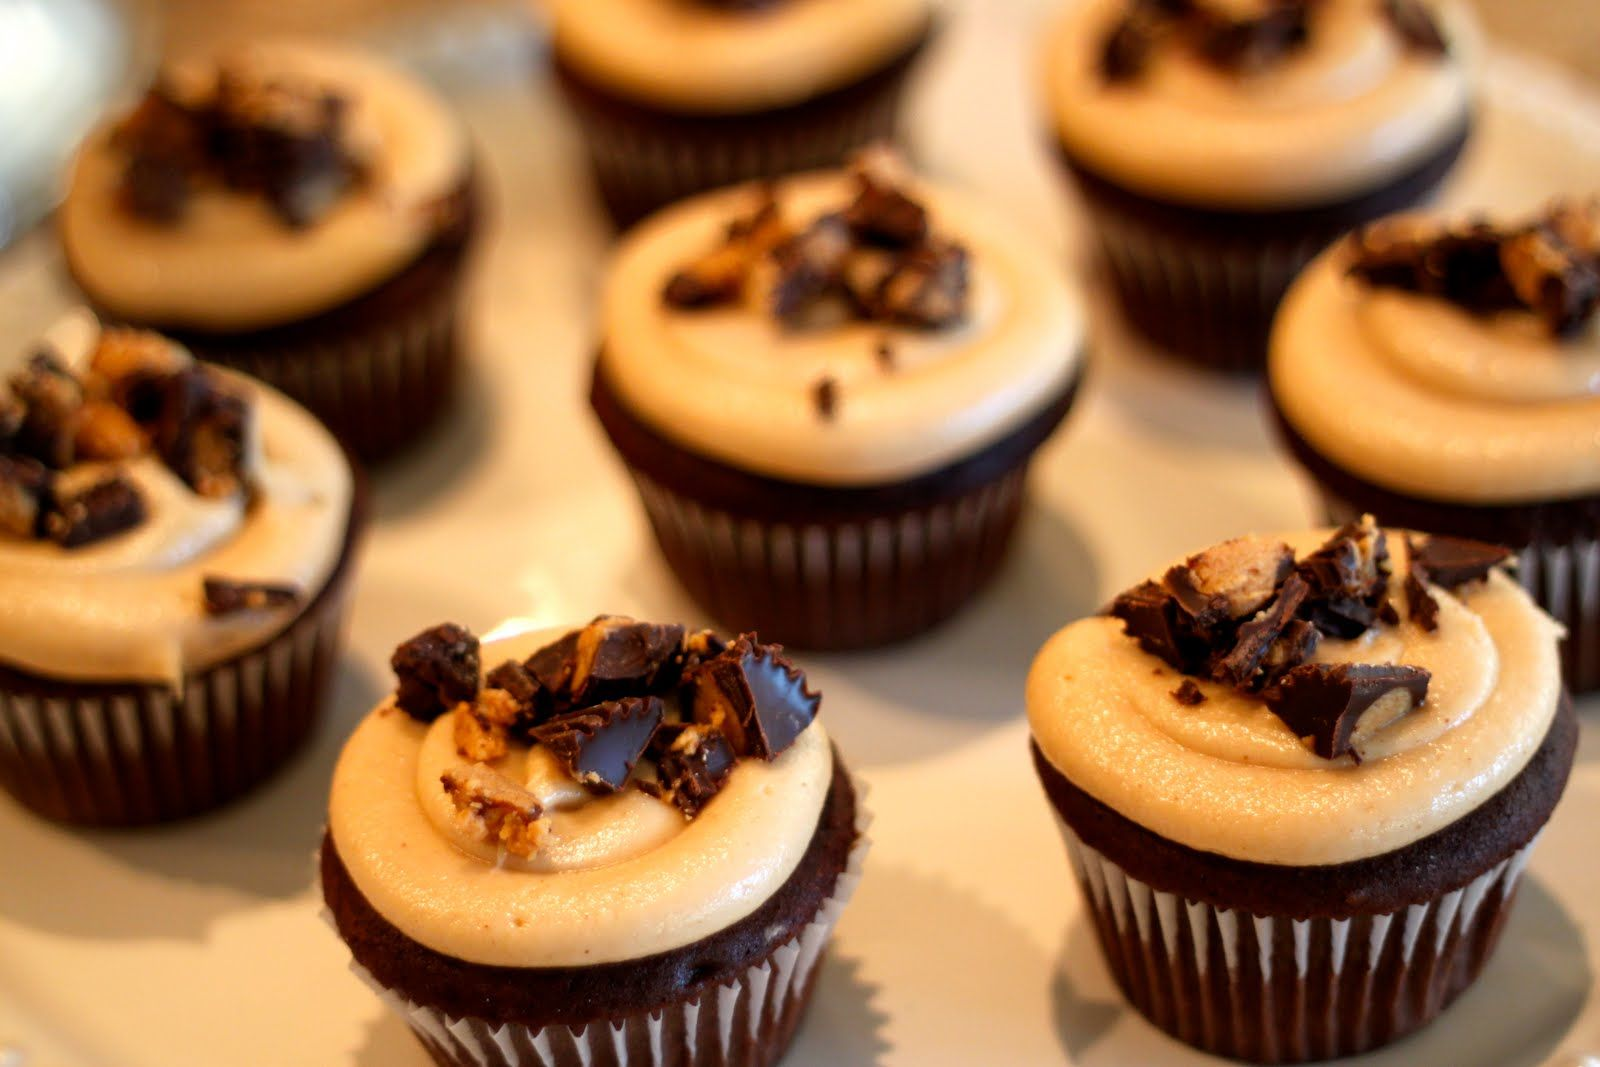 chocolate peanut butter cupcakes background 1 hd wallpapers | kid